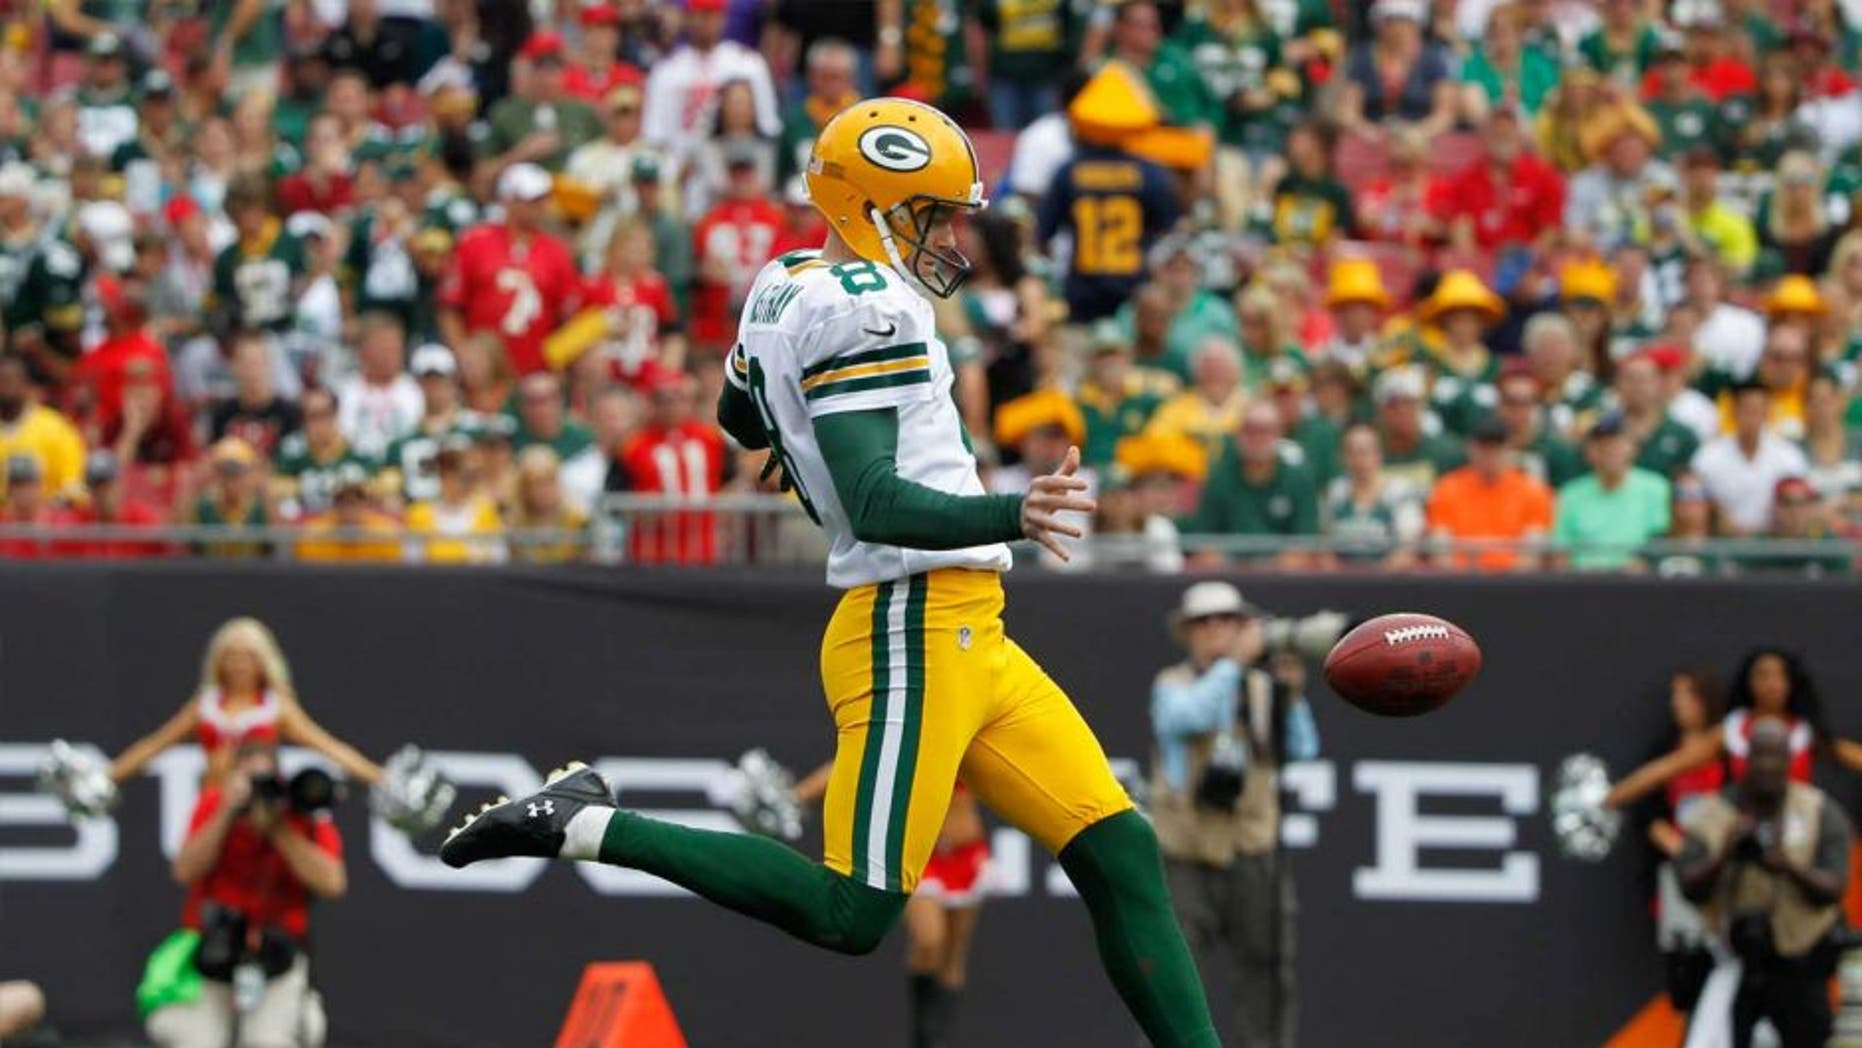 Green Bay Packers punter Tim Masthay punts the ball against the Tampa Bay Buccaneers during the first quarter at Raymond James Stadium on Dec. 21, 2014.